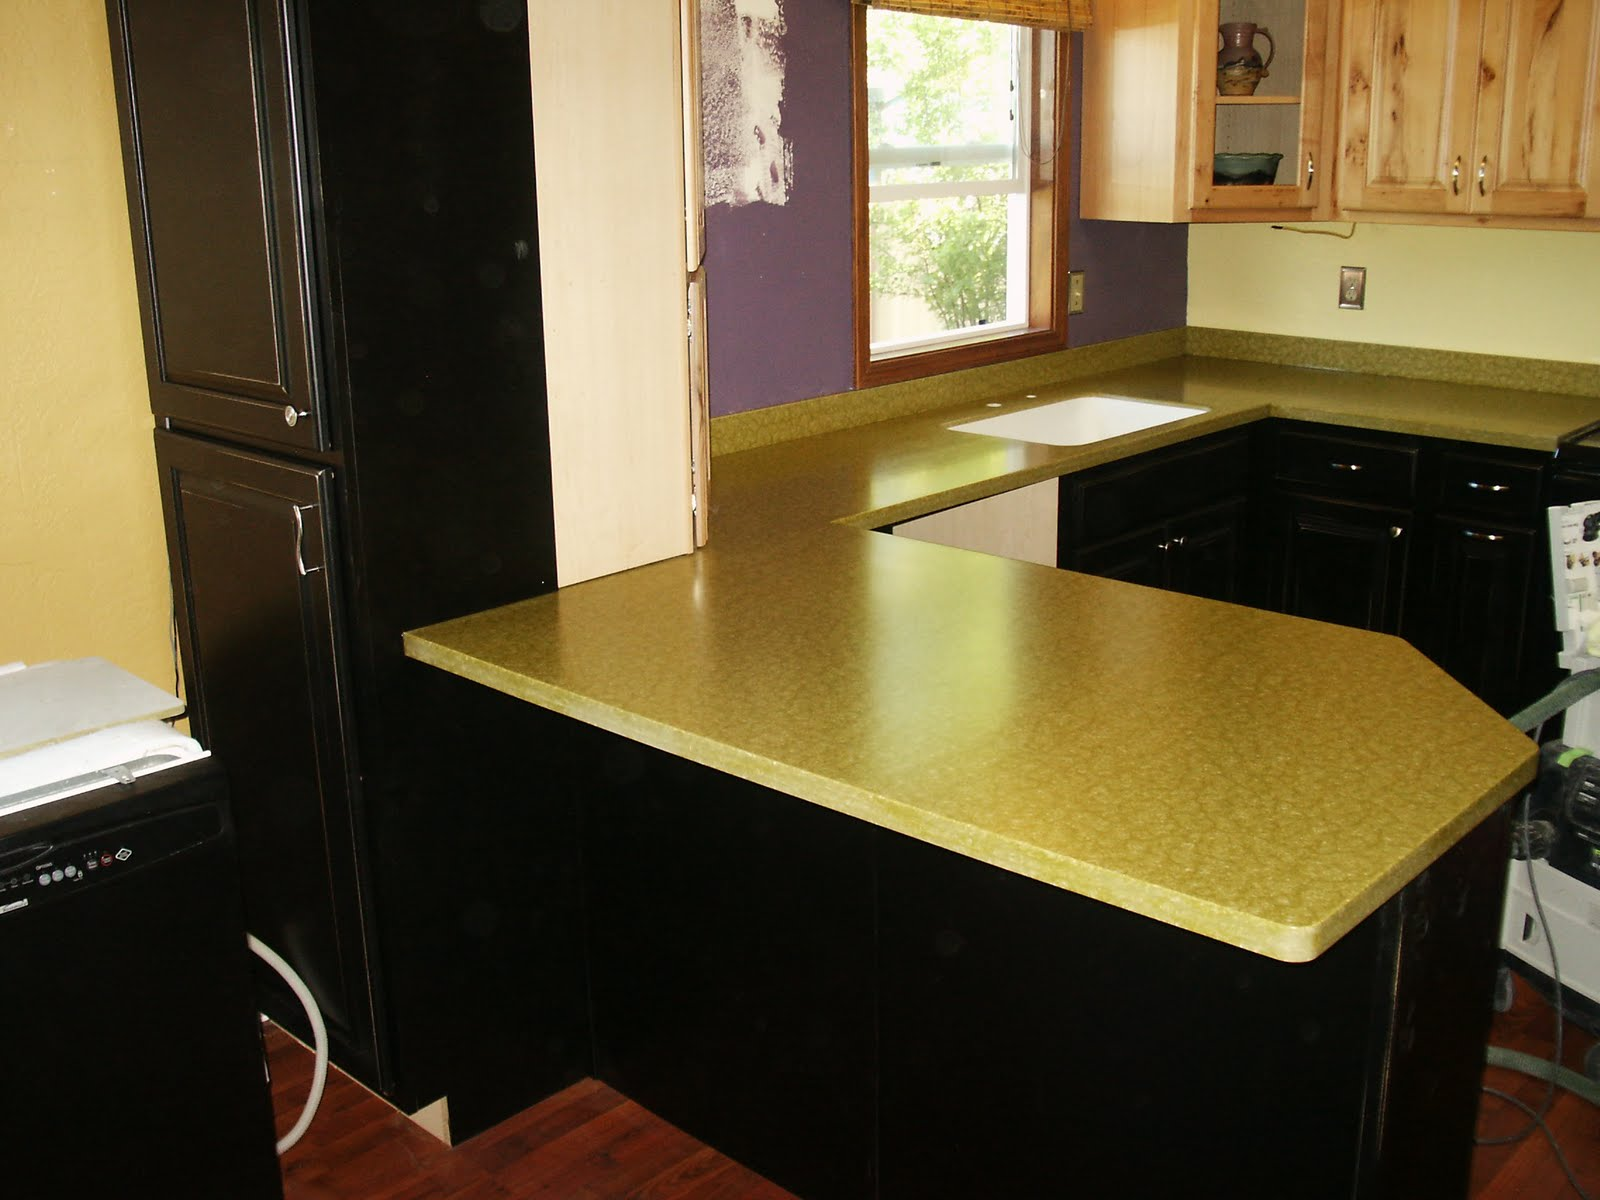 Richlite Countertop Reed Mountain Countertops - Alberton, Montana: Bremer Job